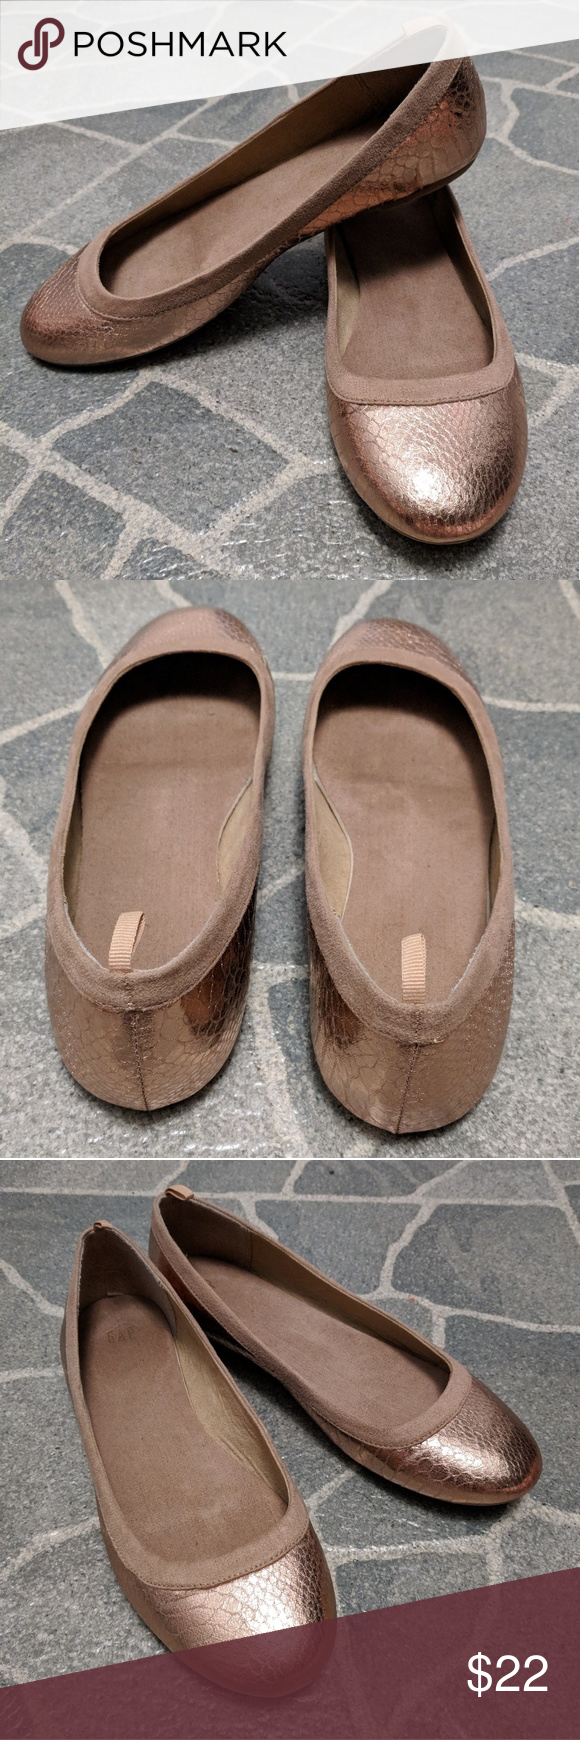 c8338a093 Flats shoes Rose Gold flats by GAP GAP Shoes Flats & Loafers | My ...